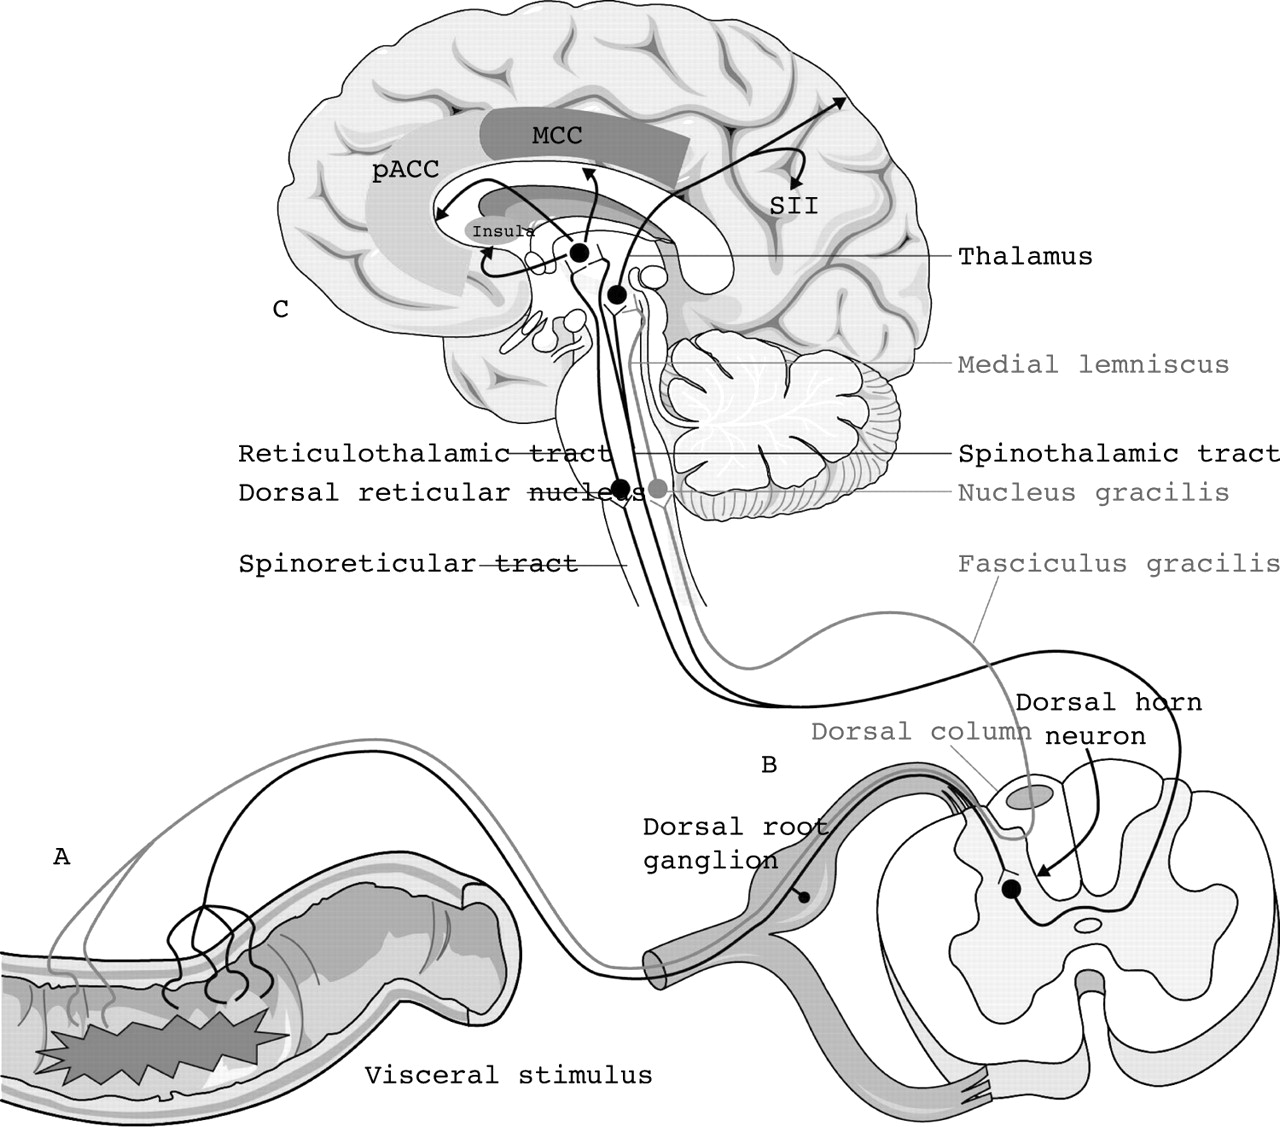 hight resolution of diagram of brain and pain